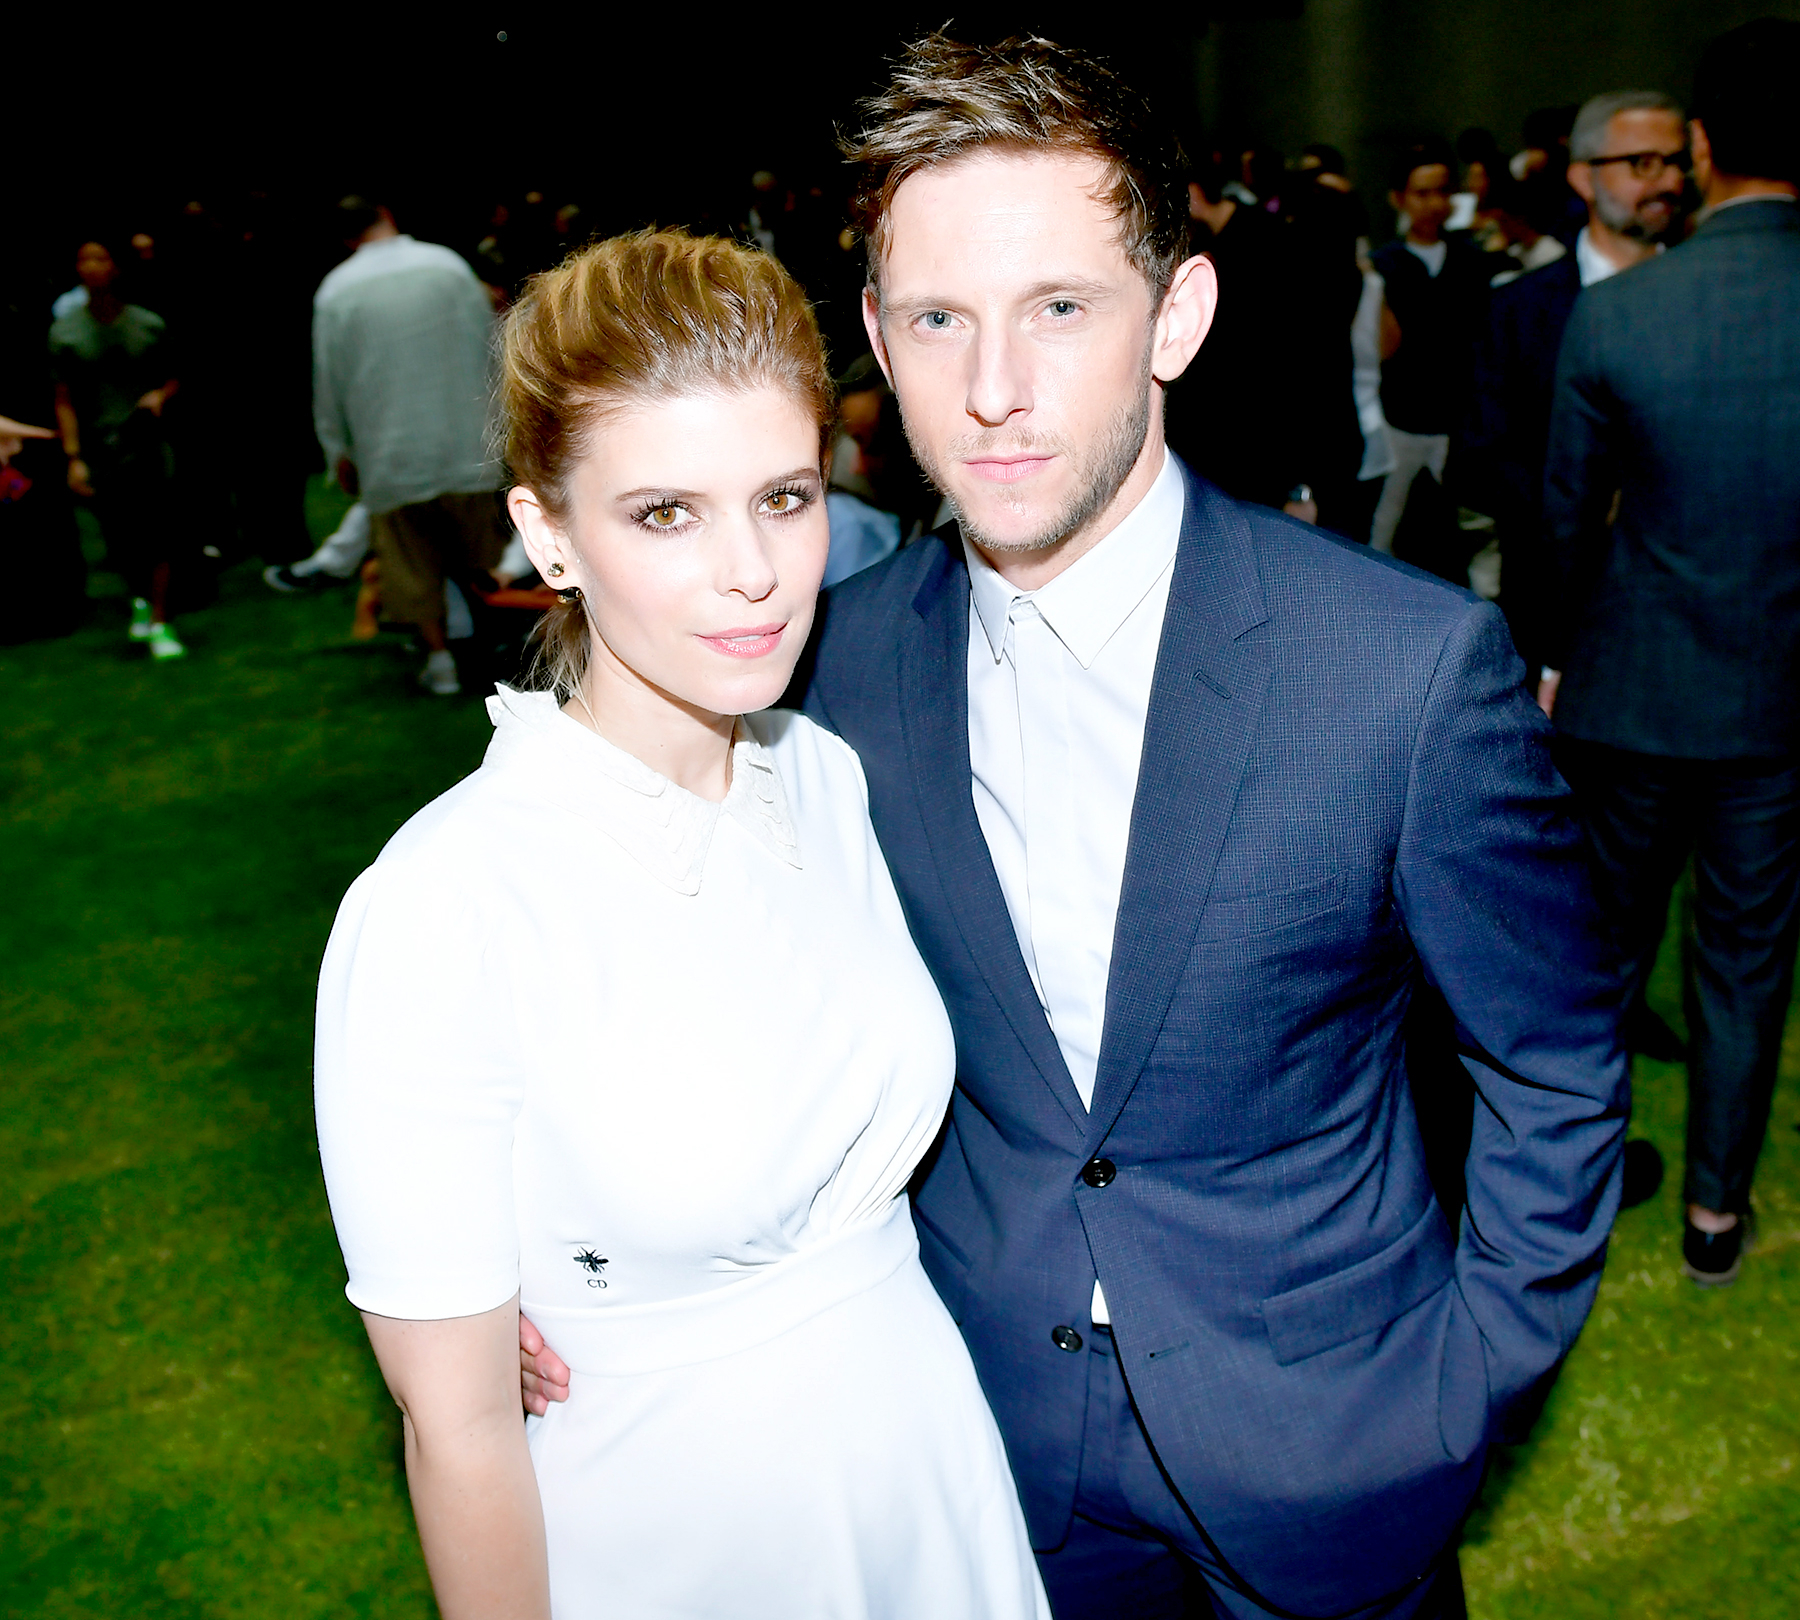 Jamie Bell and Kate Mara attend the Dior Homme Menswear Spring/Summer 2018 show as part of Paris Fashion Week on June 24, 2017 in Paris, France.